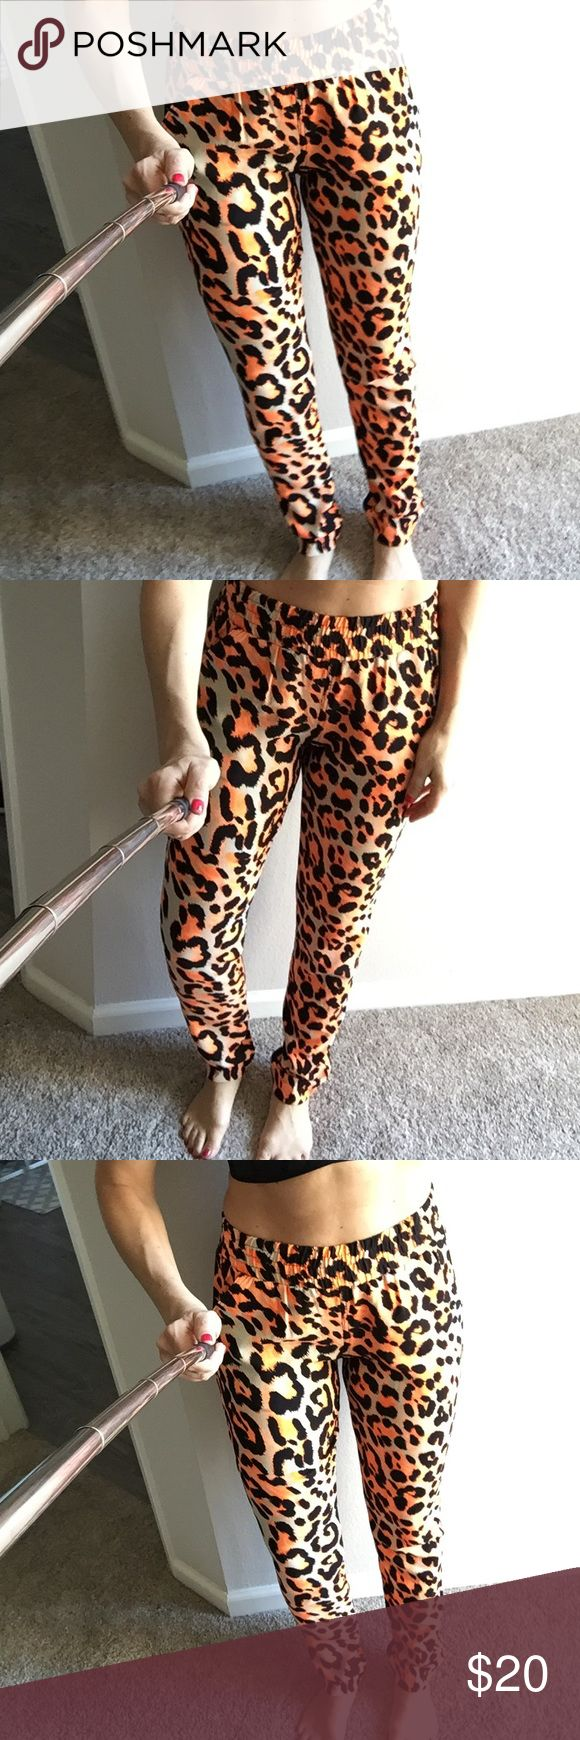 "Mika & Gala Orange leopard print pant size Medium So cute and unique! Slim, relaxed fit. size medium, true to size. 2"" Thick elastic waist band and side slit pockets. About 40"" long from top to bottom- ""fake"" butt pockets. Awesome bright Orange black and tan leopard print.  Purchased at a boutique in LA, in perfect condition no stains no rips no tears! Pants"